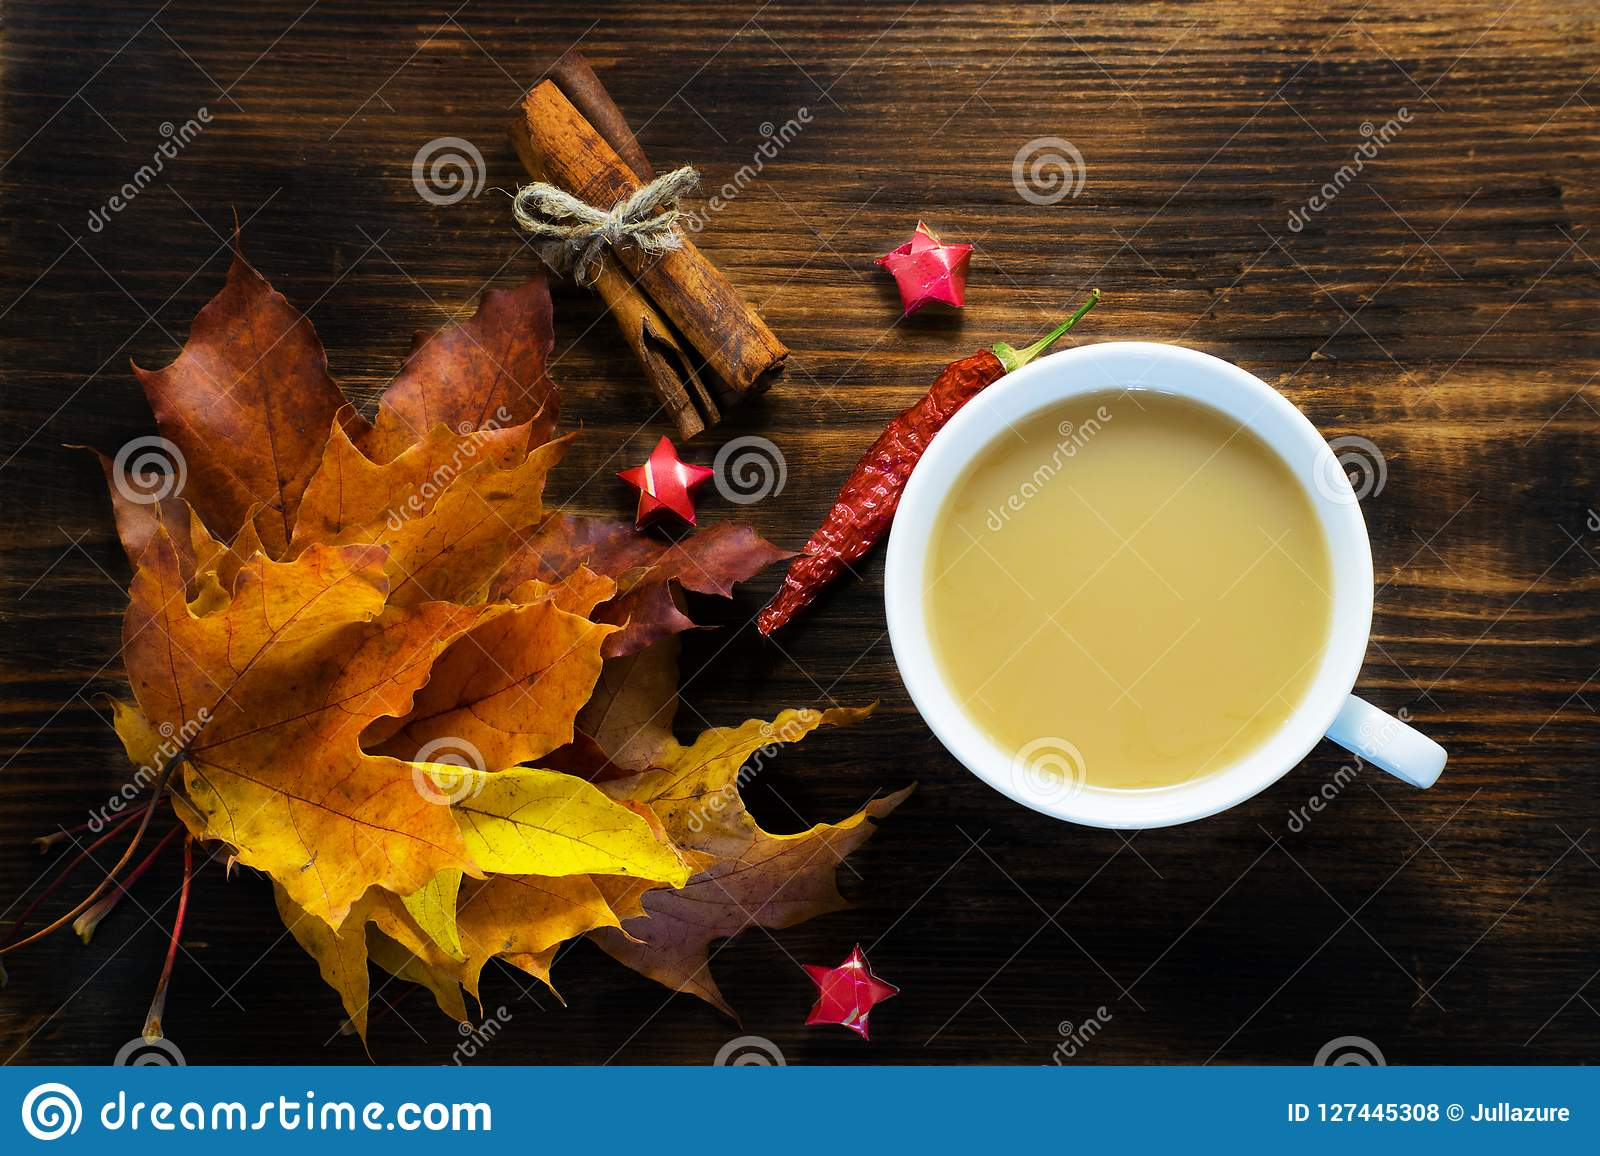 Mug of hot coffee with milk and spices and autumn leaves on wooden table. Morning cup of cappuccino coffee with cinnamon and maple